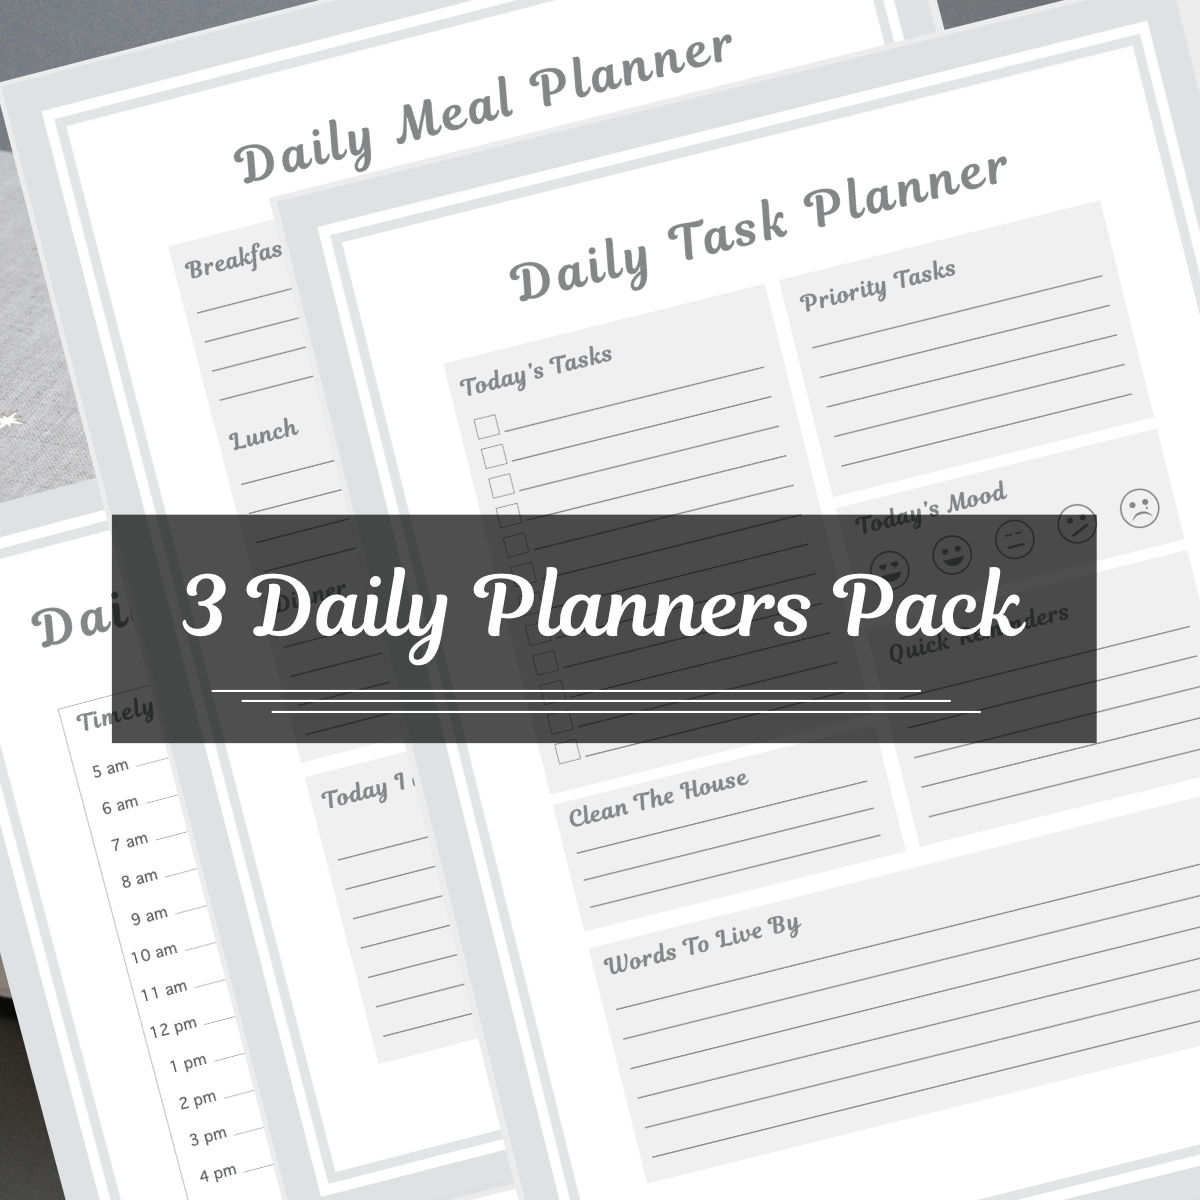 Daily planner pack